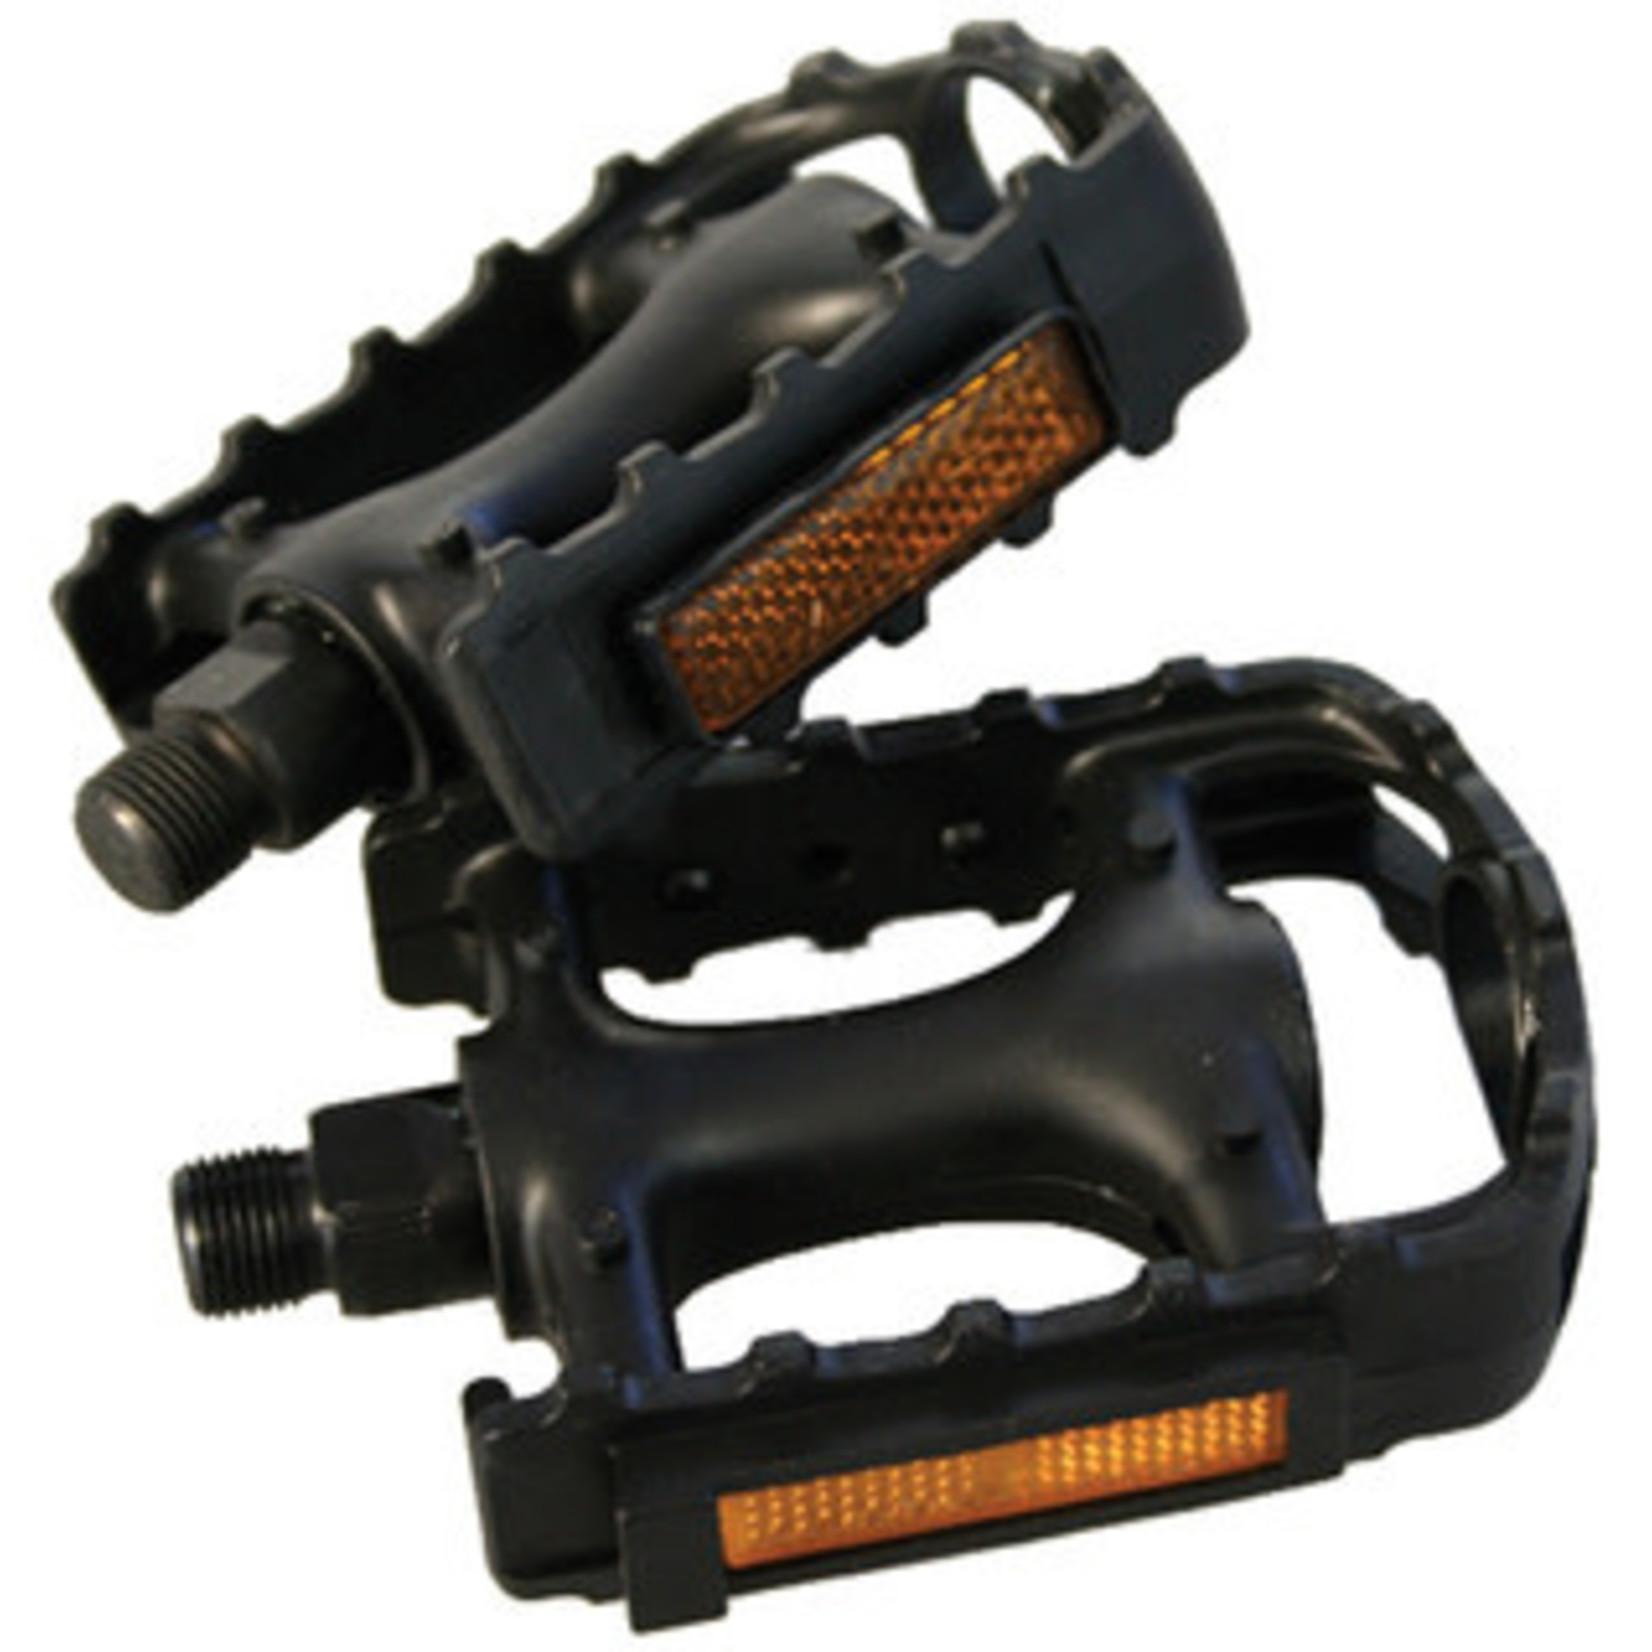 "IGNITE 9/16"" Bicycle BMX MTB Adult Mountain Cycle Bike Black Reflector Pedals"